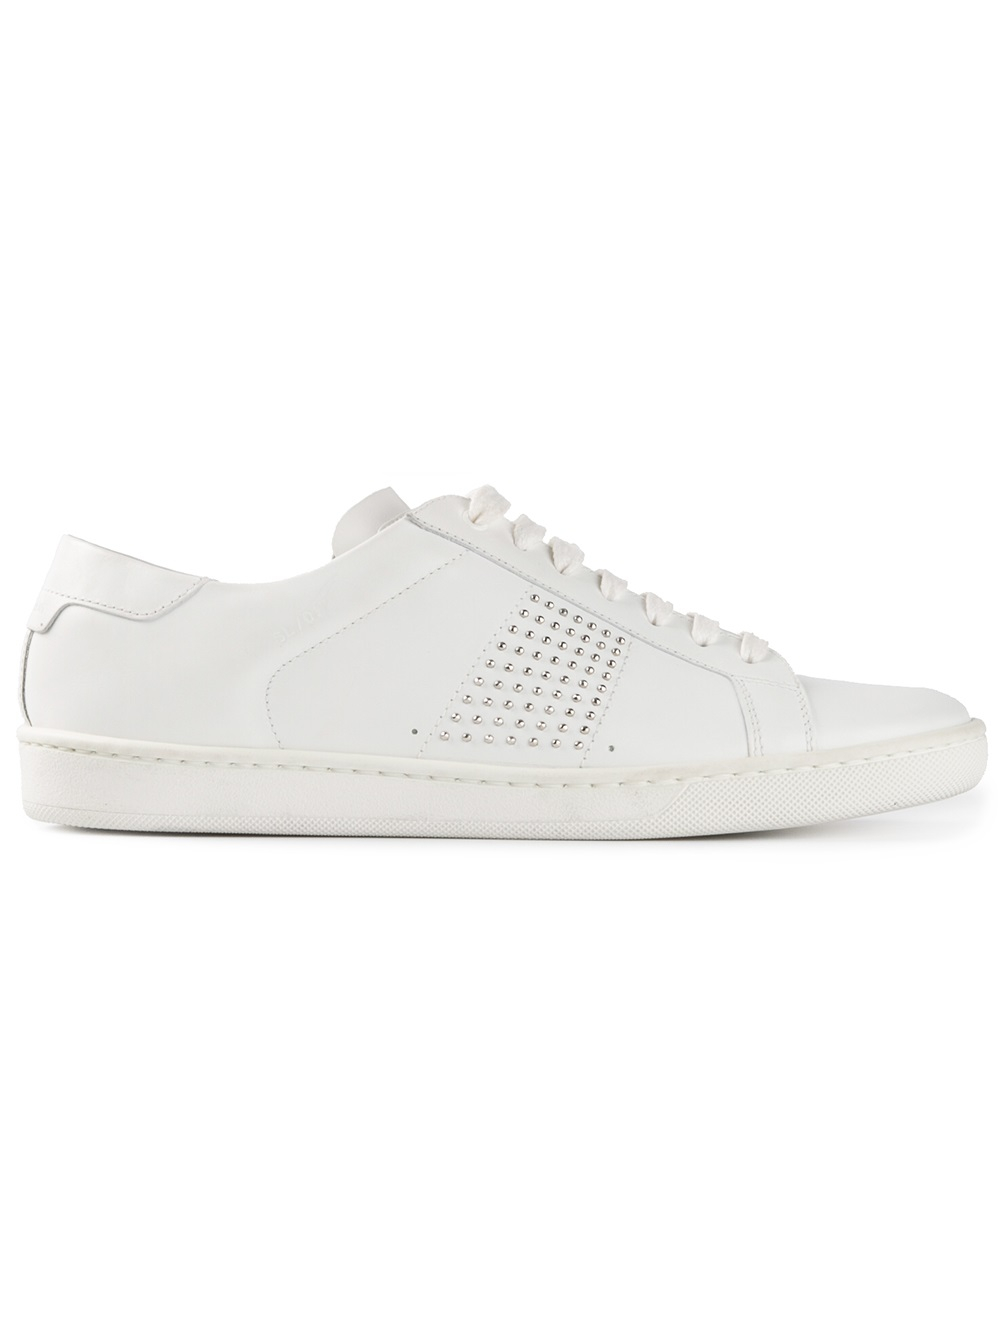 2c2b9769487c ... Planet Sports 2018 sneakers d87ff 7cd2f  Lyst - Saint Laurent Studded  Court Classic Sneaker in White offer discounts 8ca12 178fc ...